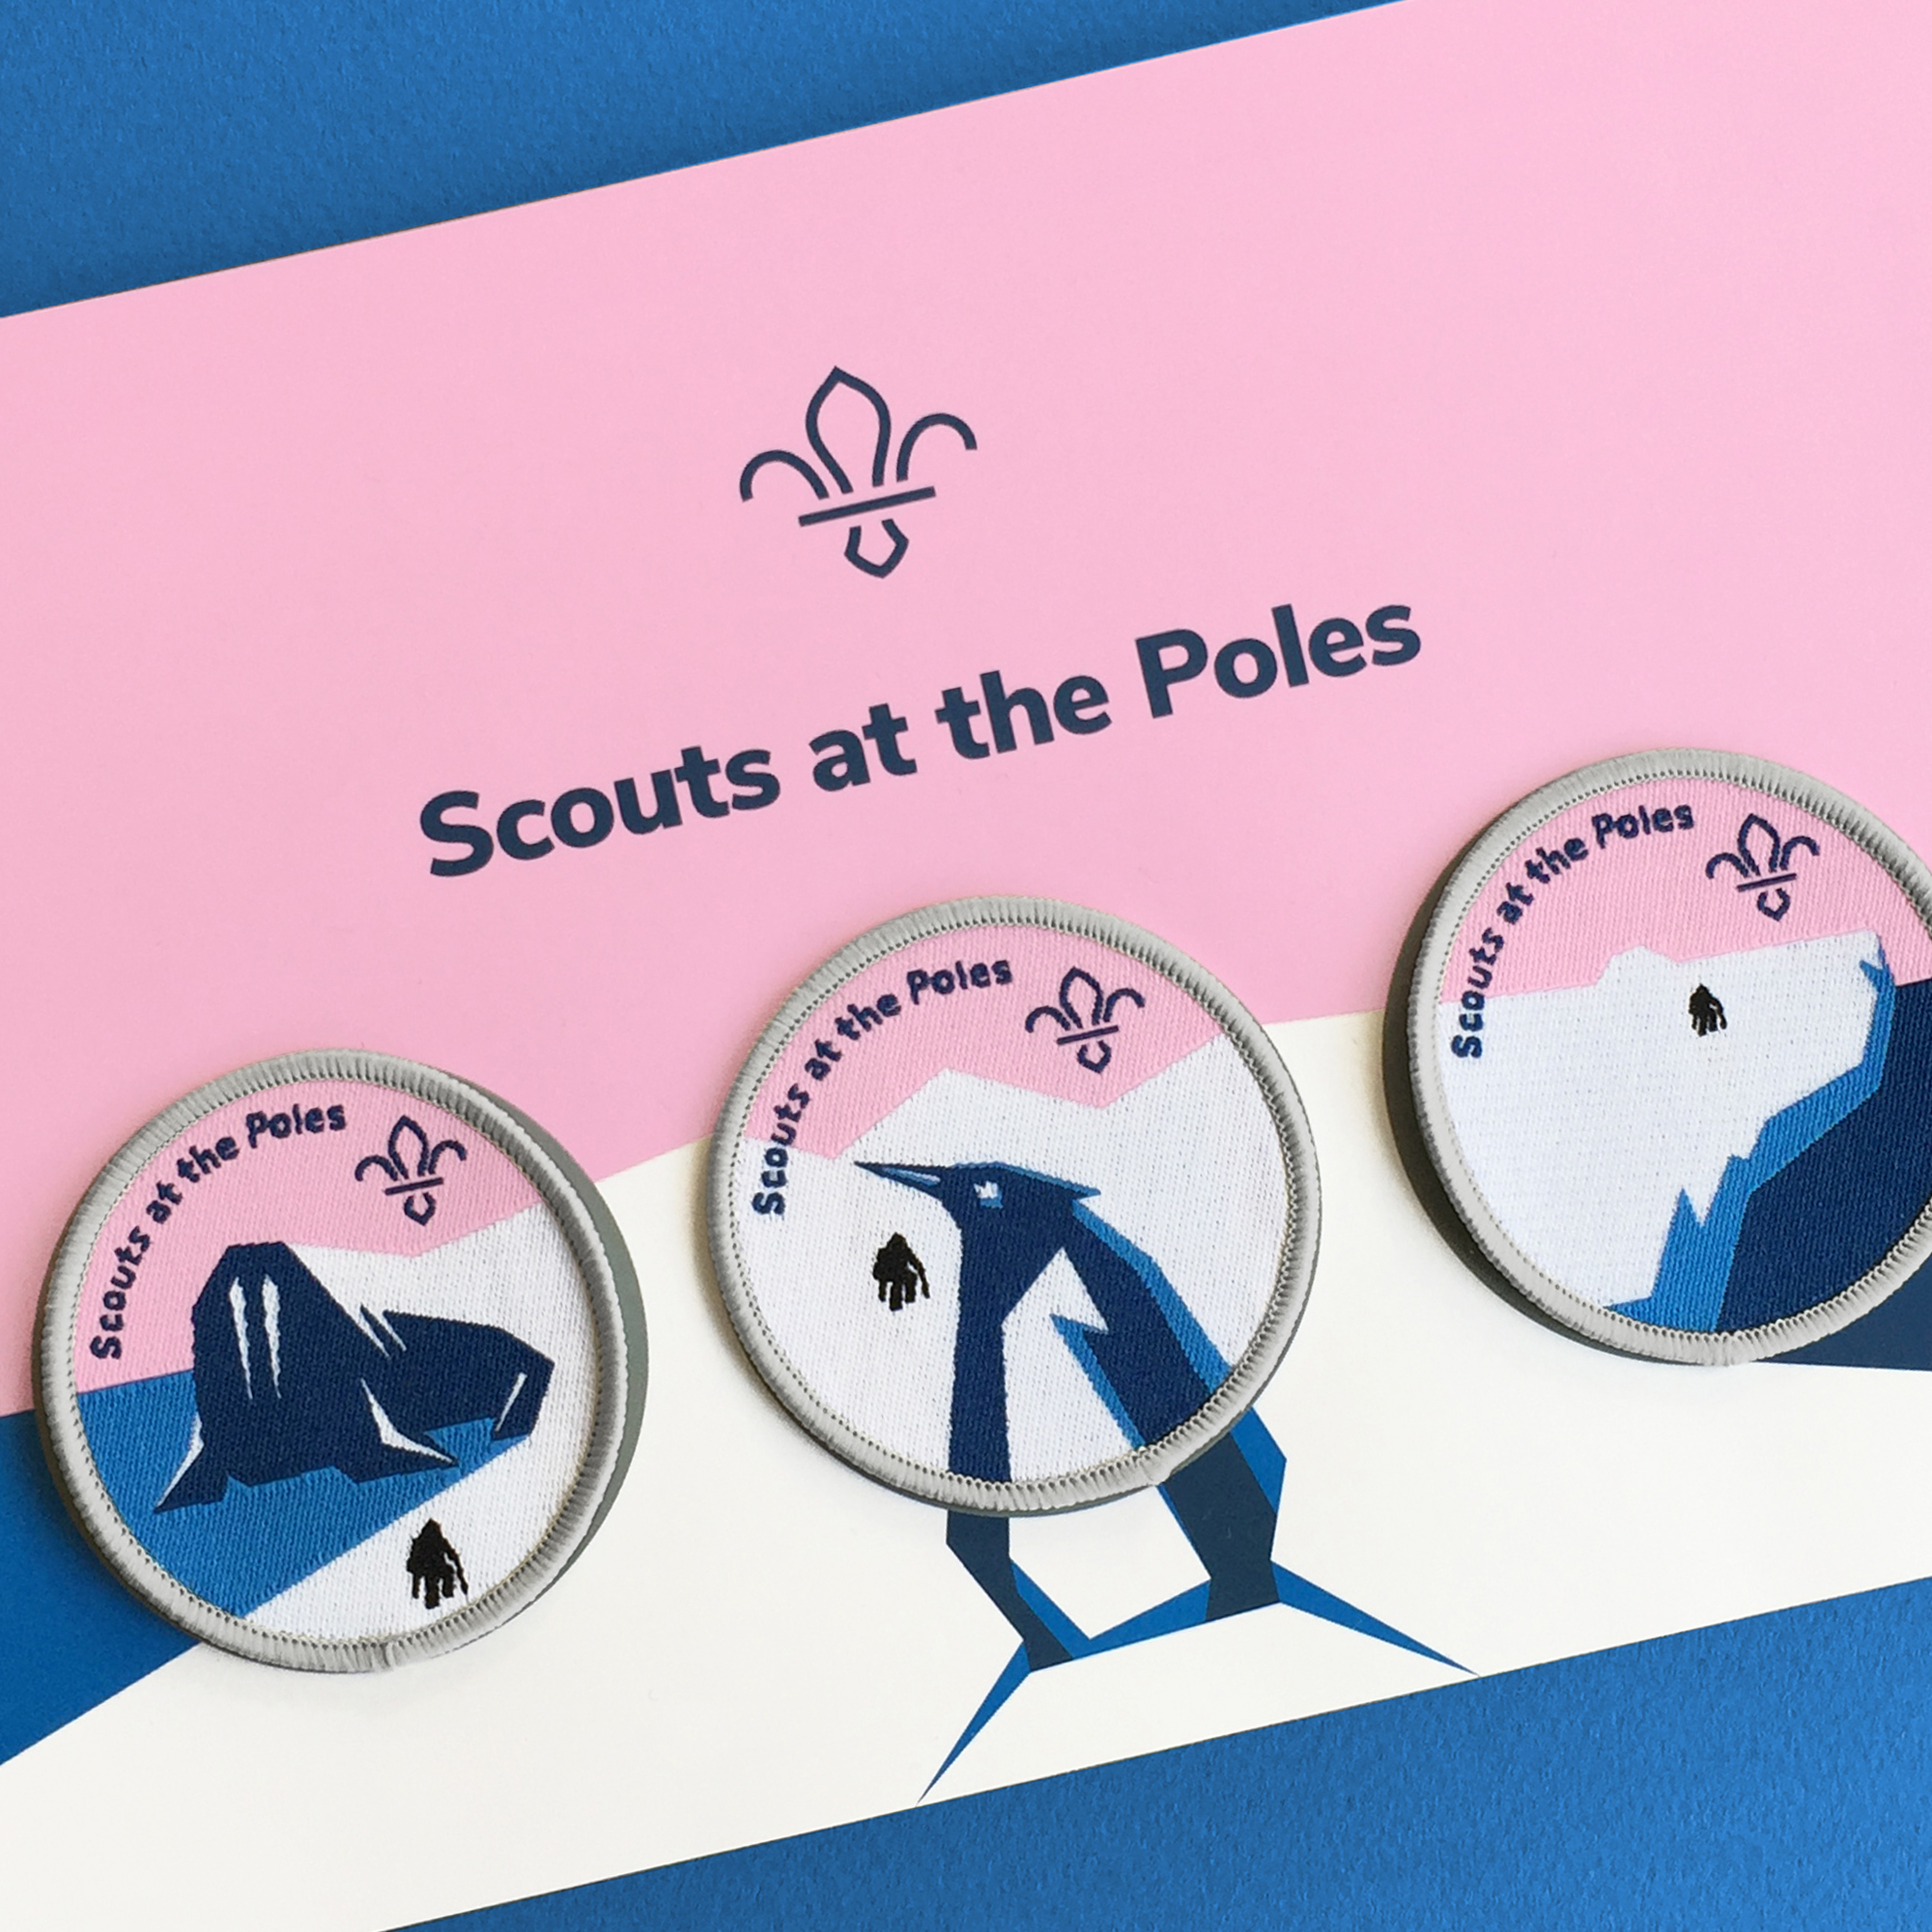 Scouts - Polar Badges